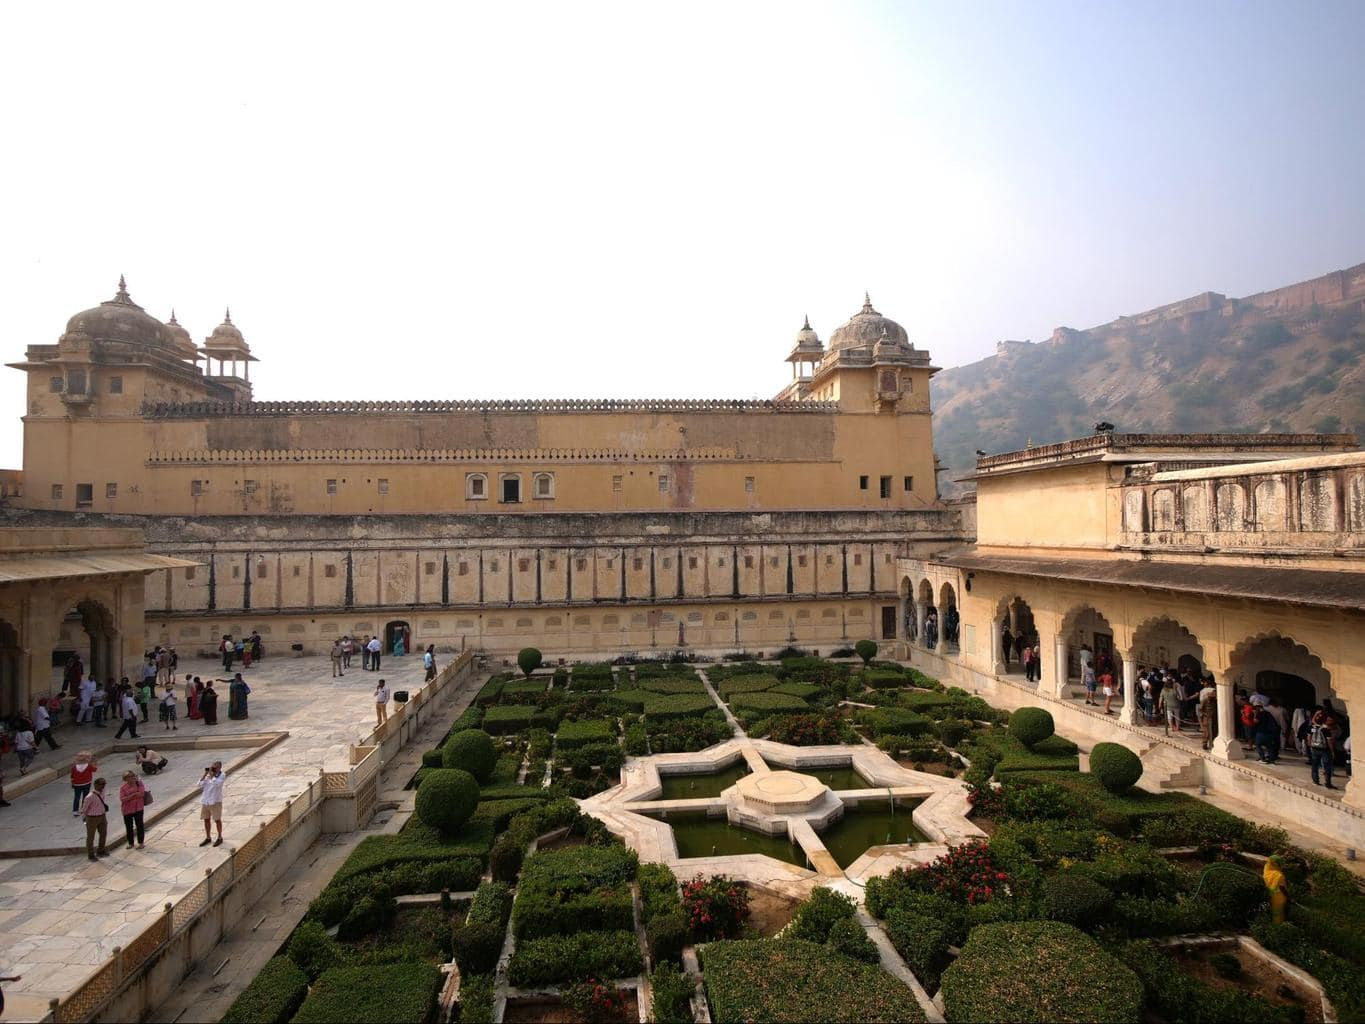 The Mughal gardens at Amer Fort